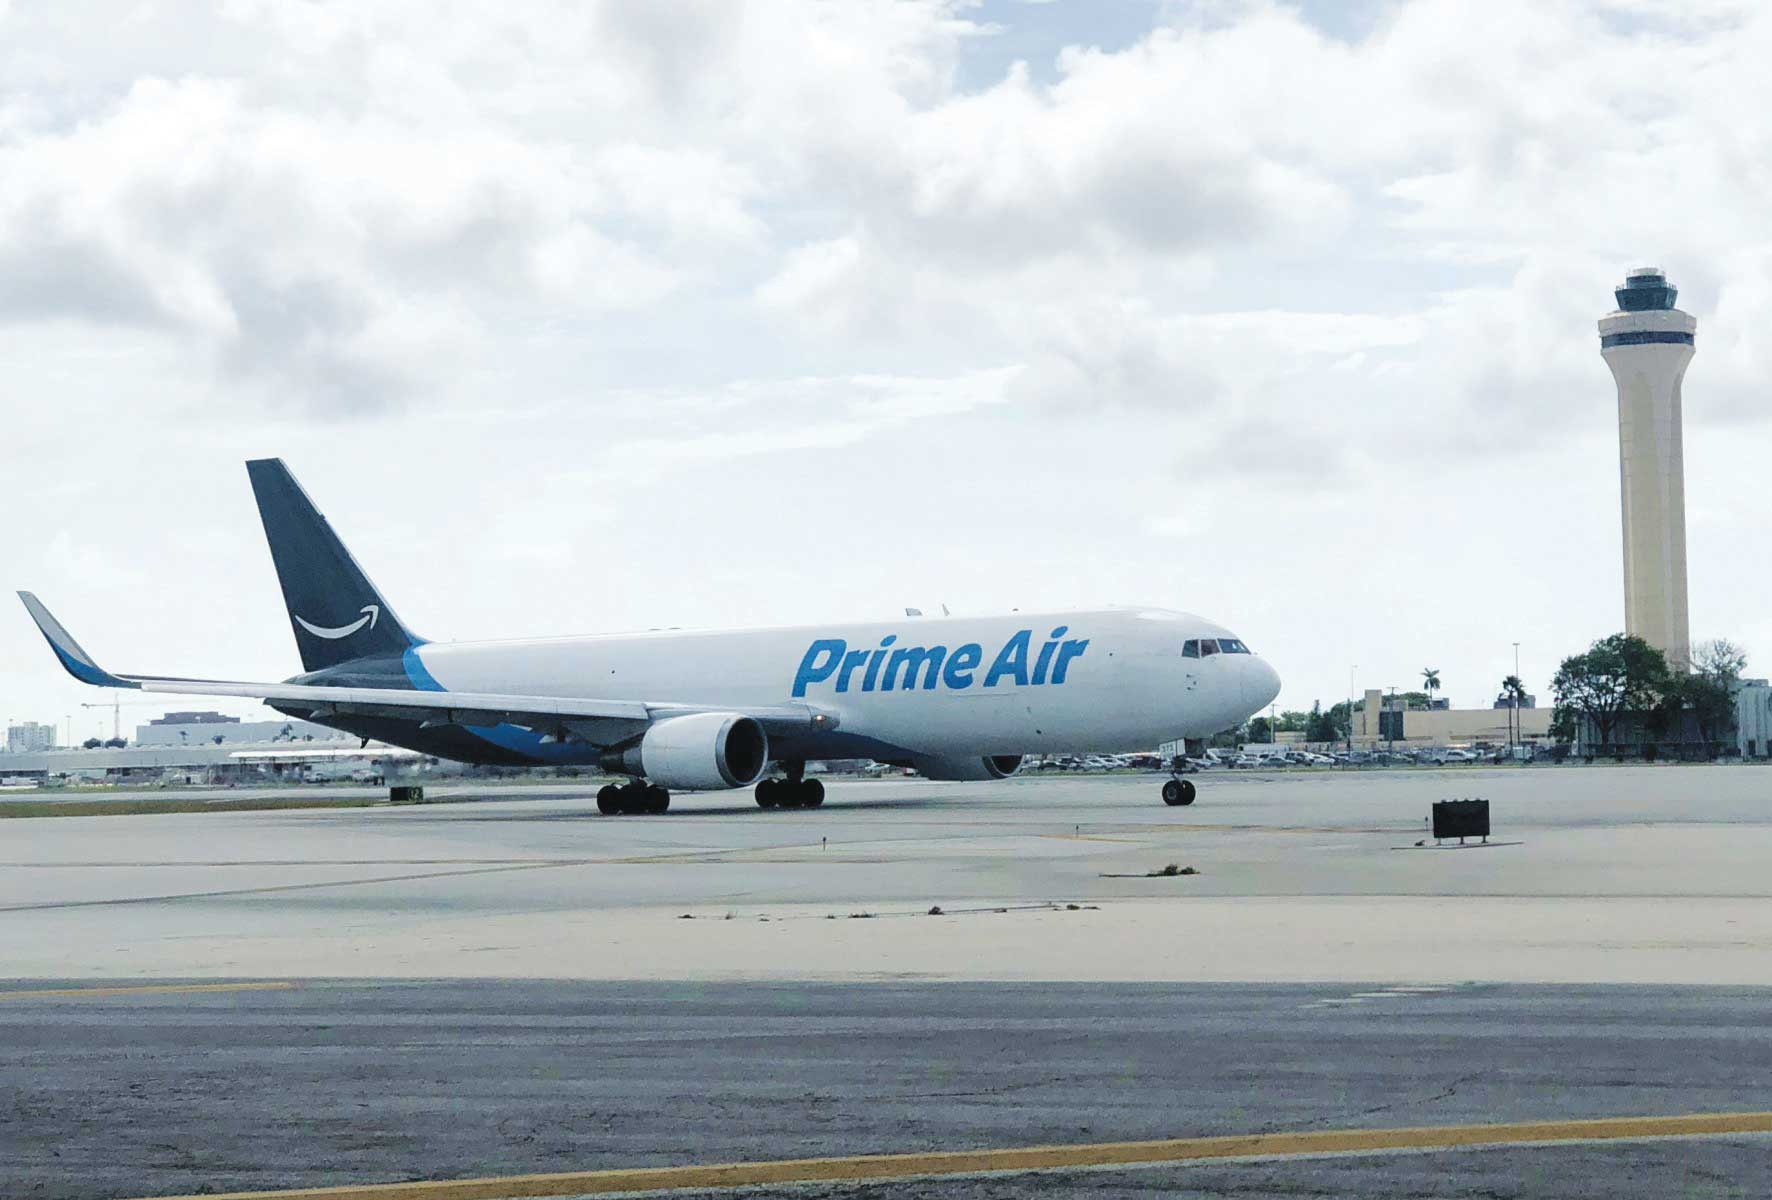 Amazon Air joins Miami International Airport